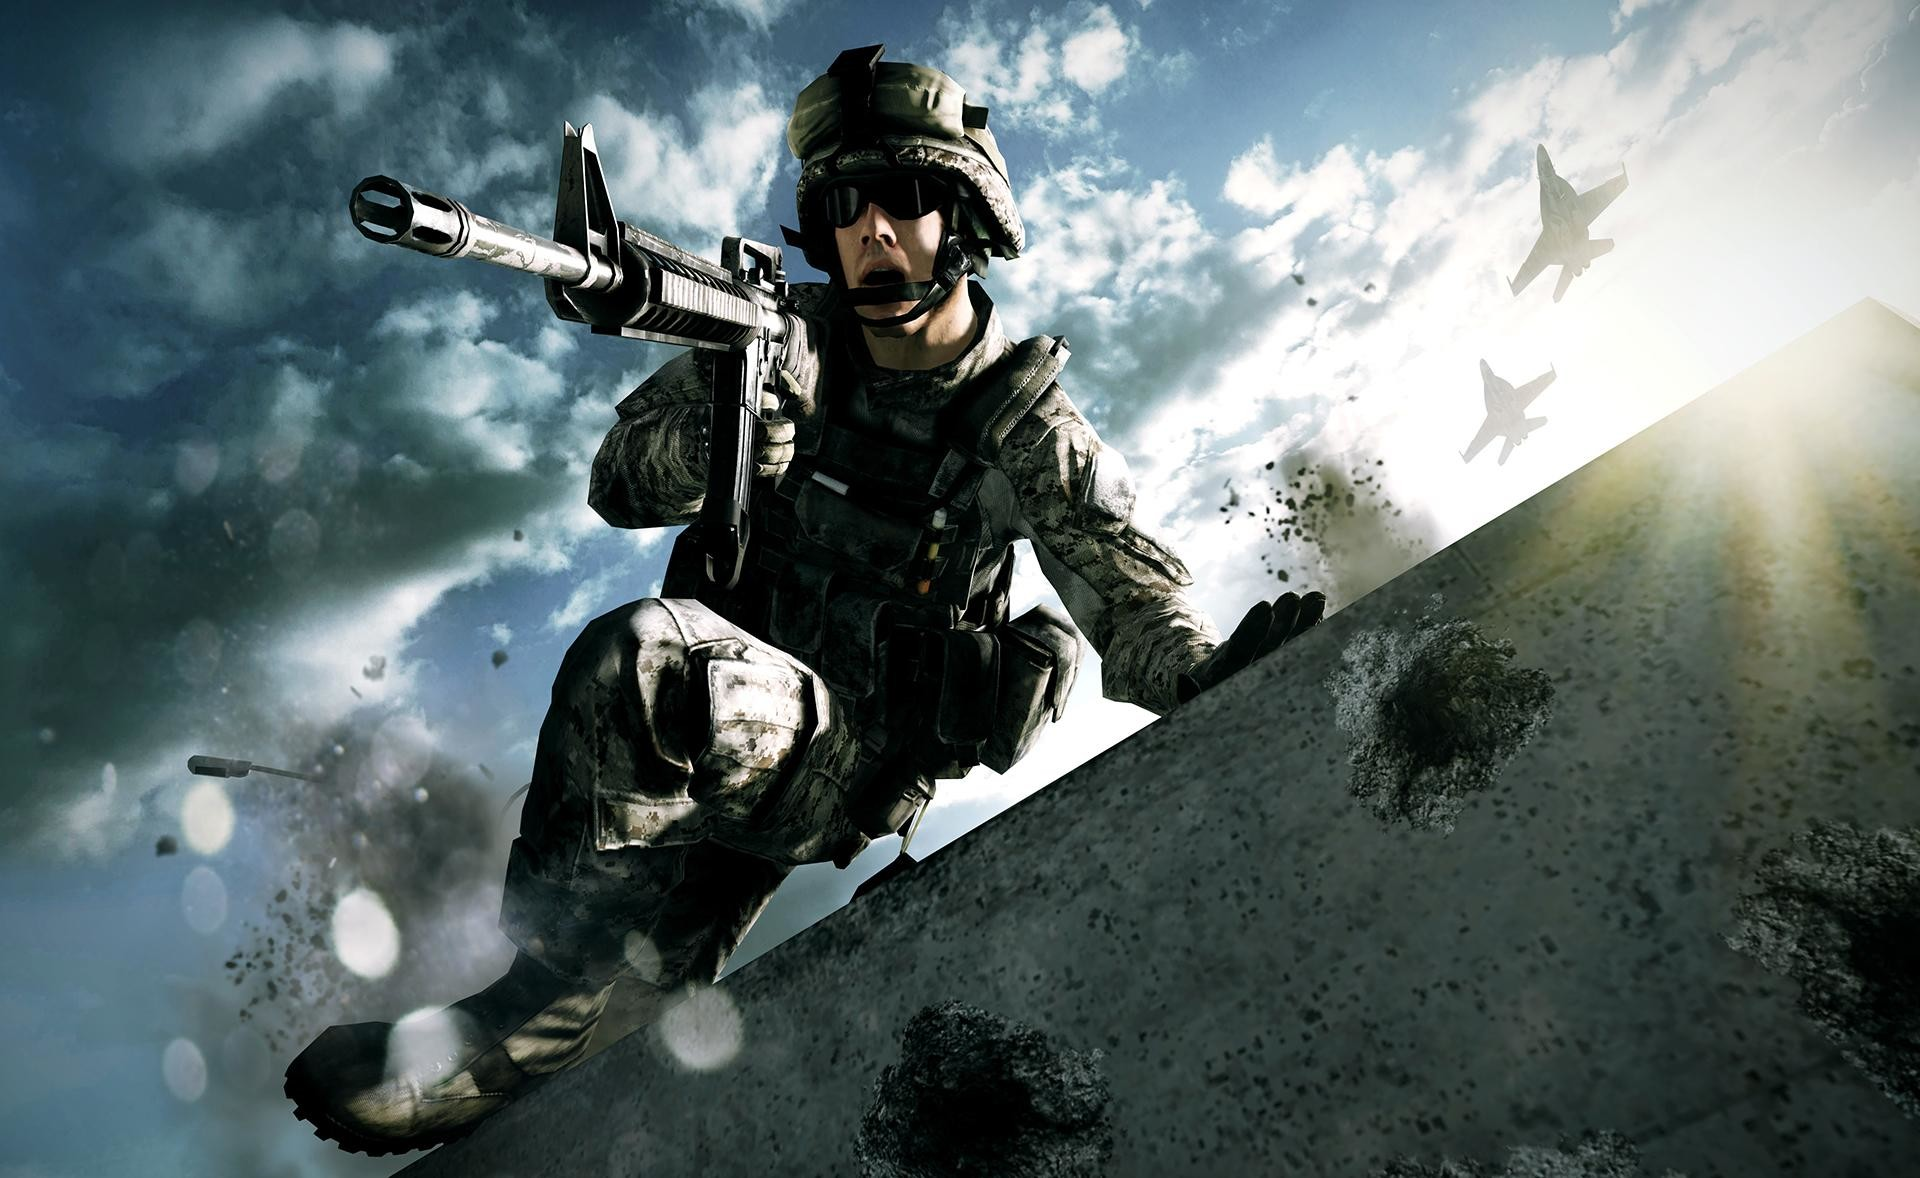 Cool Military Wallpapers (80 Wallpapers)